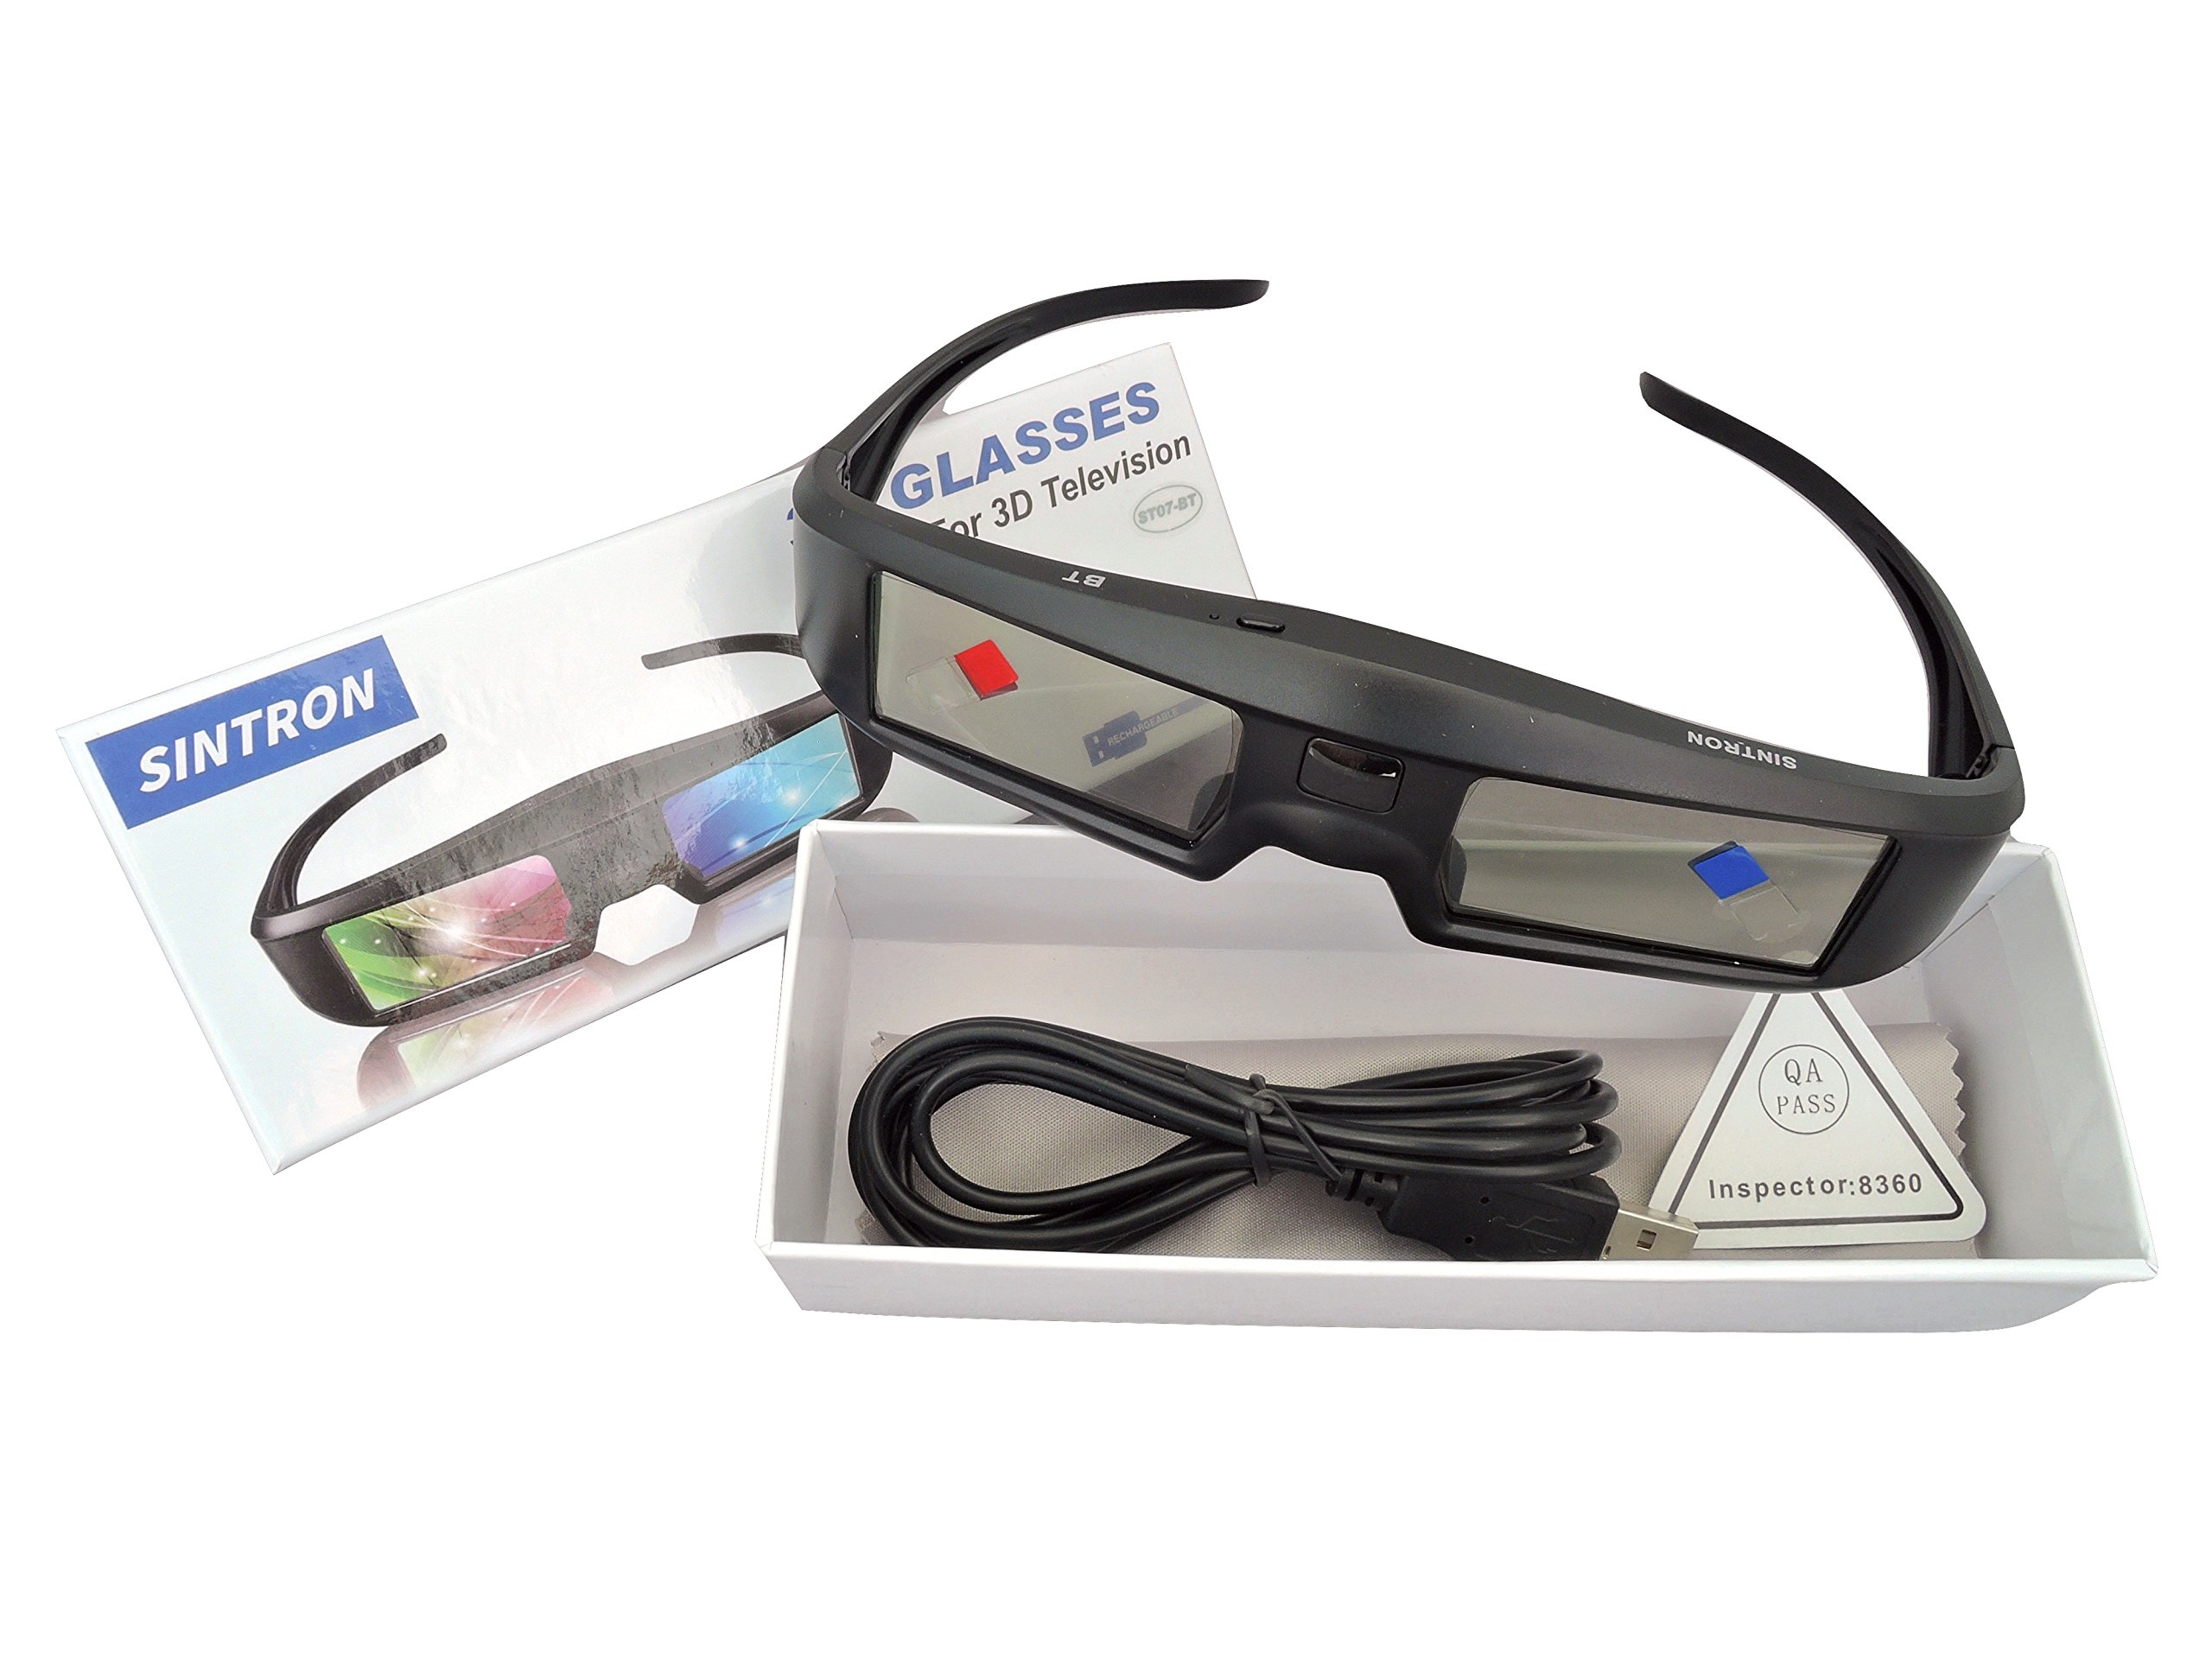 2X 3D Active Shutter Glasses Rechargeable - Sintron ST07-BT for RF 3D TV, 3D Glasses for Sony, Panasonic, Samsung 3D TV, Epson 3D projector, Compatible with TDG-BT500A TDG-BT400A TY-ER3D5MA TY-ER3D4MA by Sintron (Image #6)